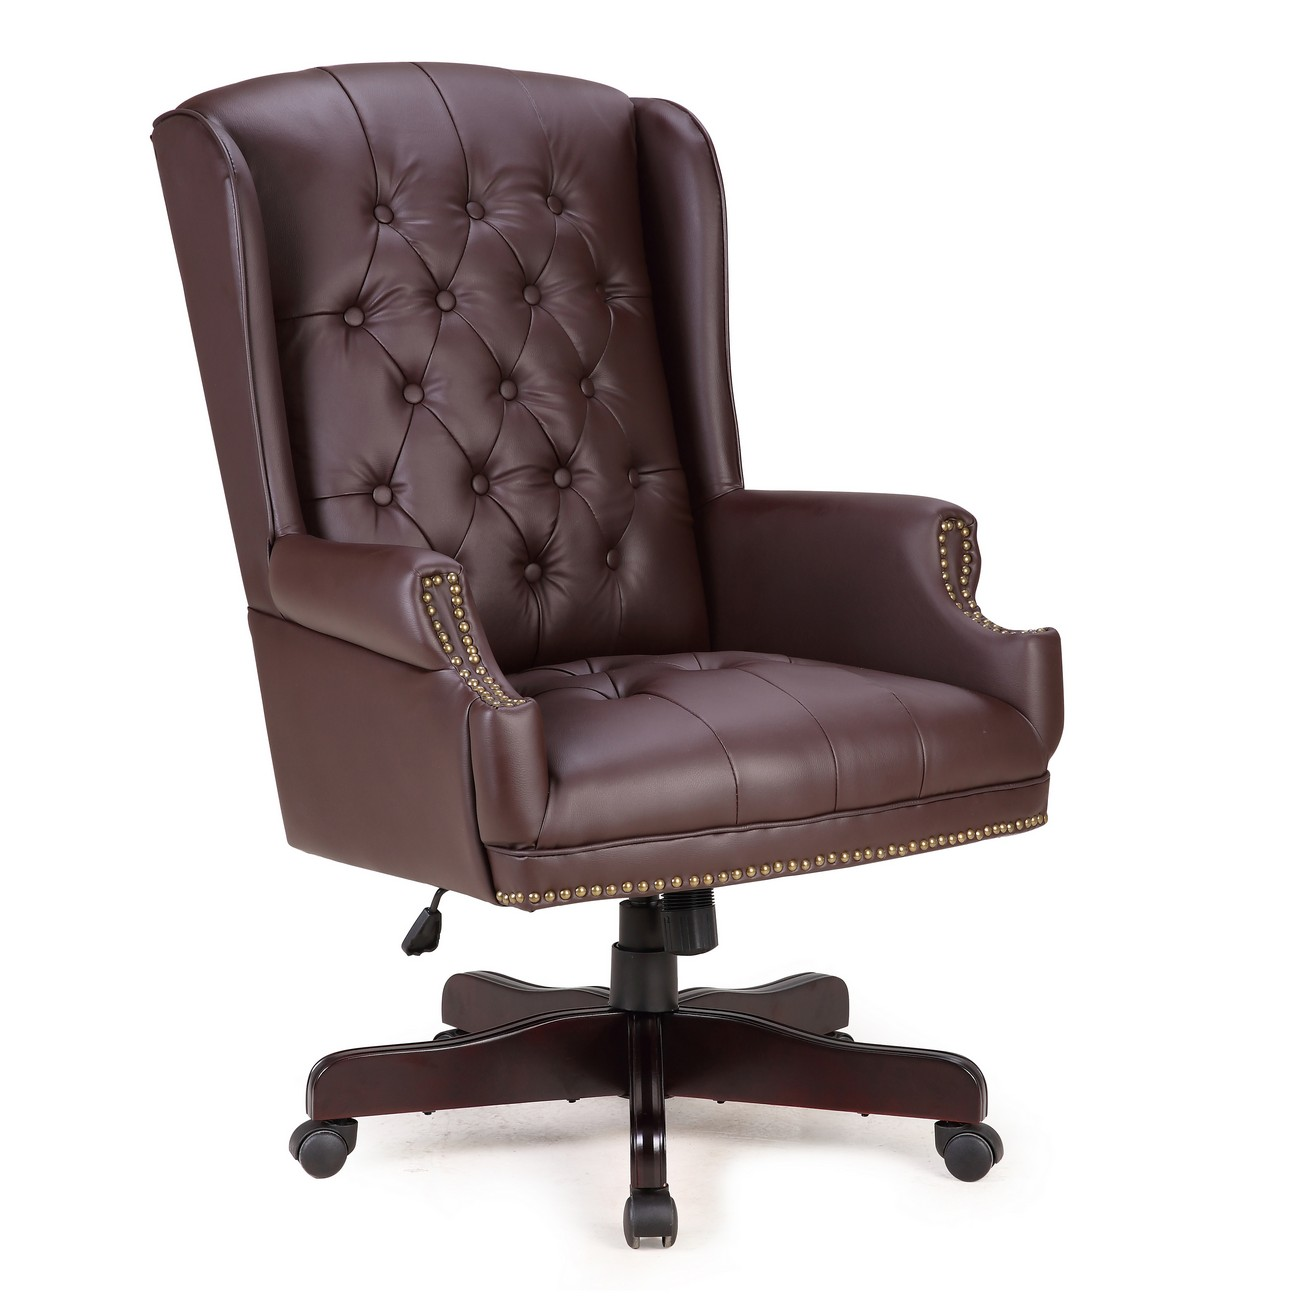 Tufted Leather Office Chair Details About Traditional Executive Wingback Office Chair Button Tufted W Faux Leather Brown